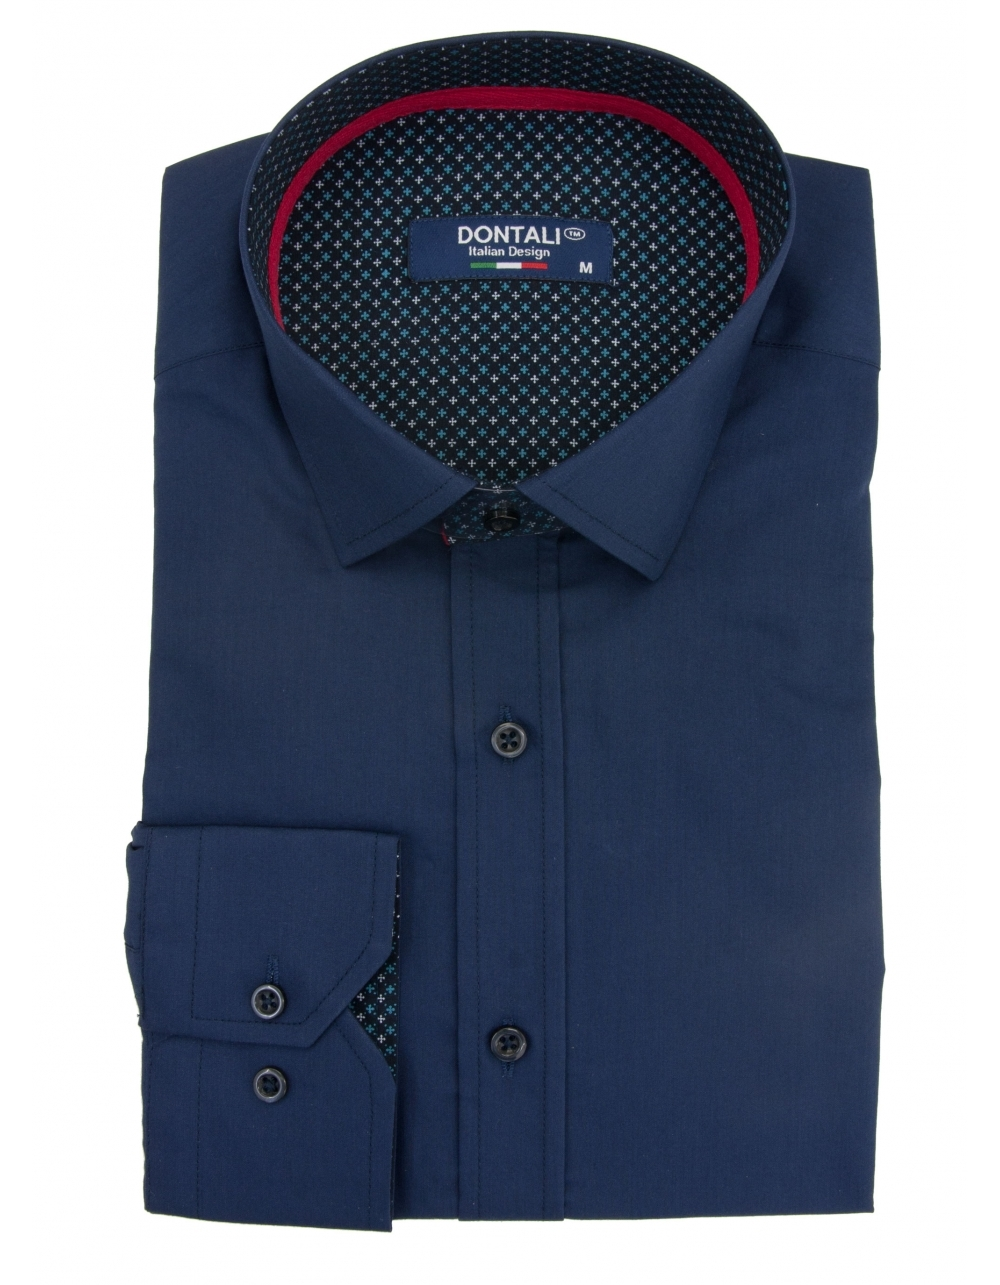 Dontali slim fit shirt